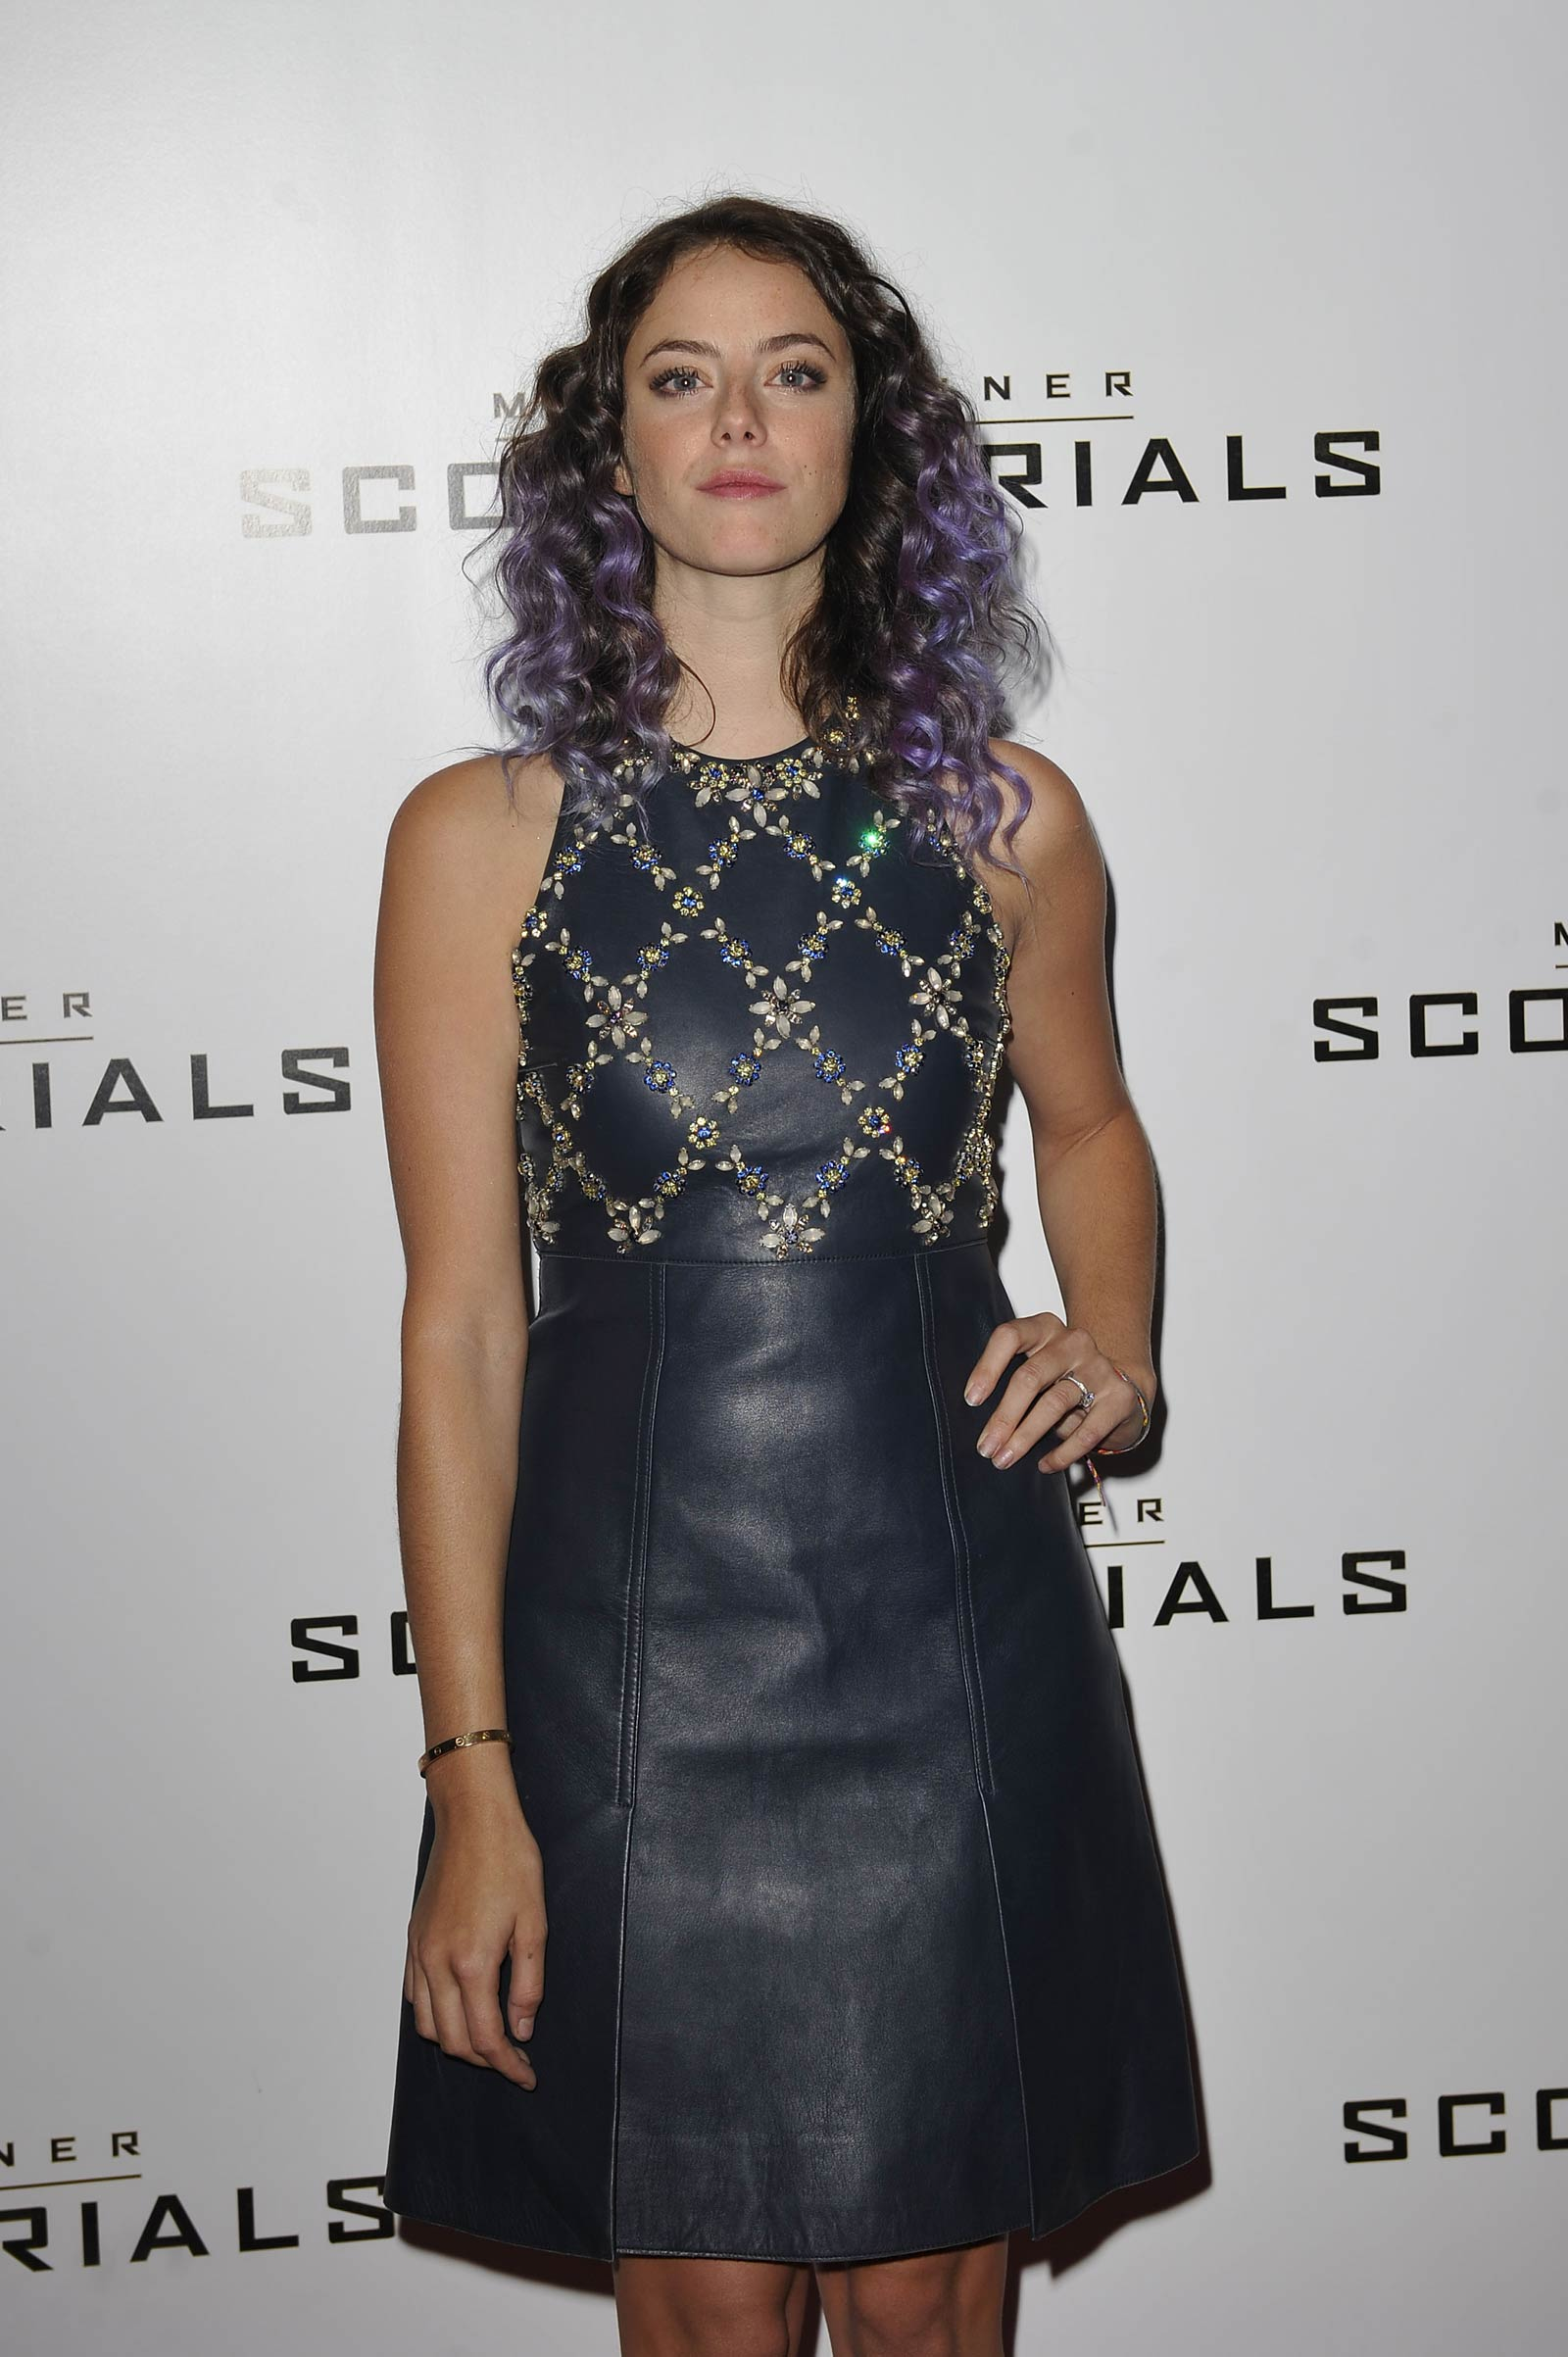 Kaya Scodelario attends Maze Runner The Scorch Trials premiere